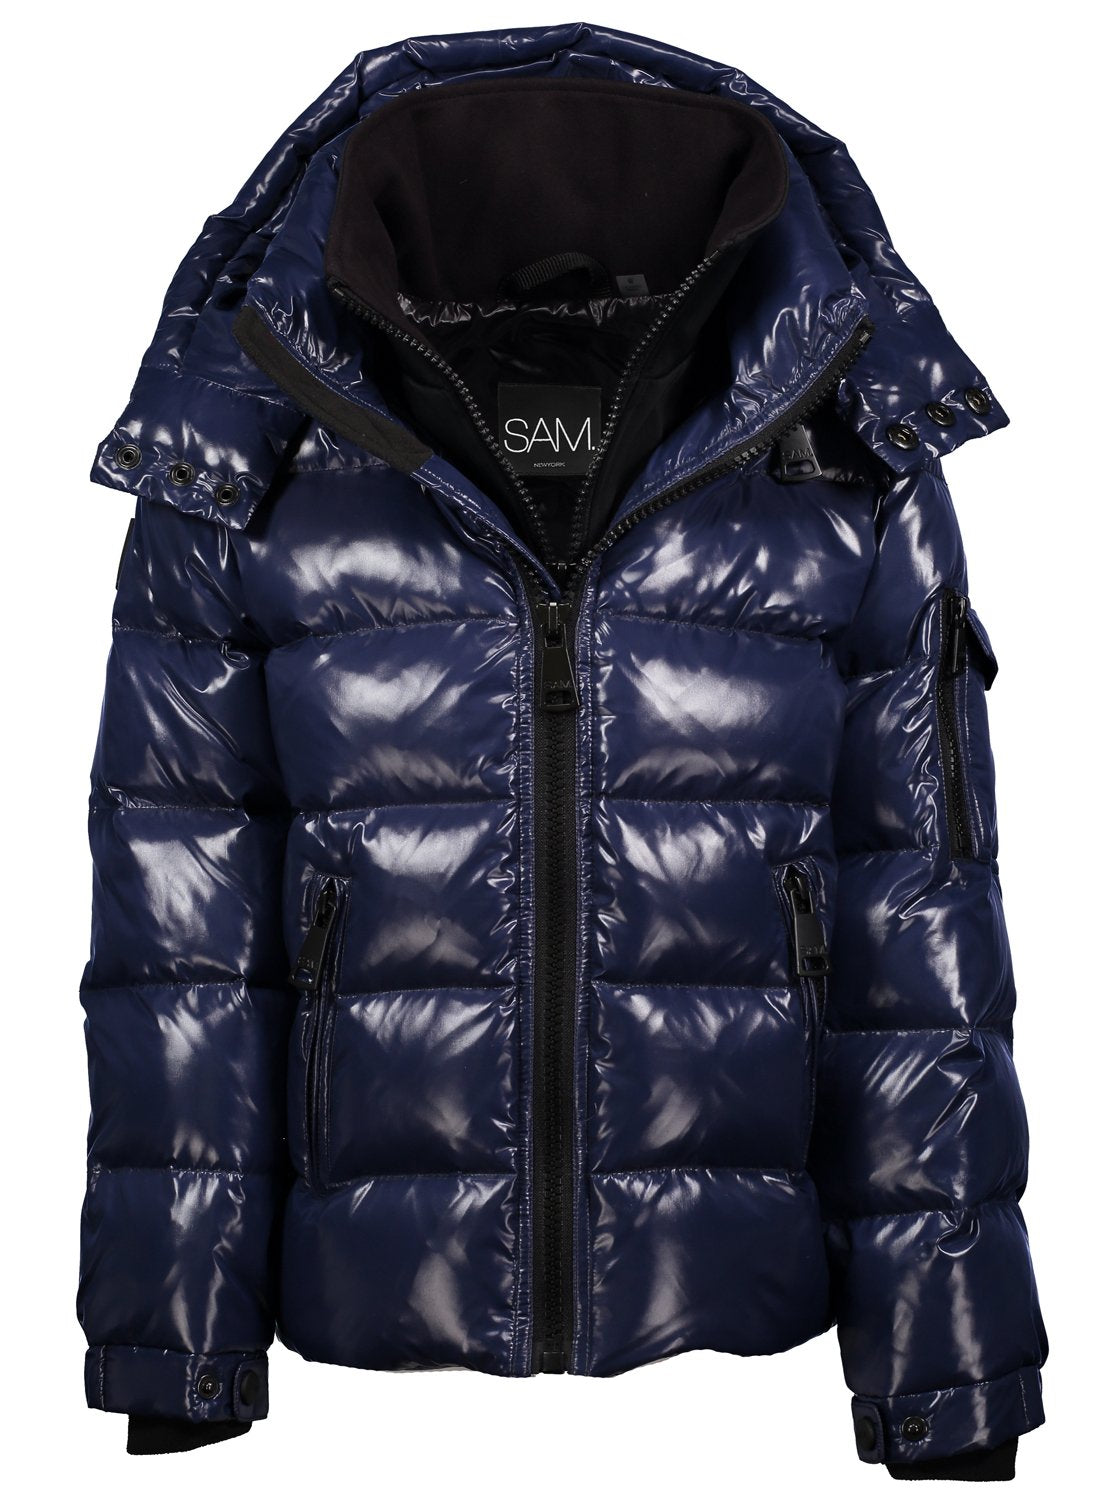 TODDLER BOYS GLACIER TODDLER BOYS GLACIER - SAM. New York Sam nyc jacket